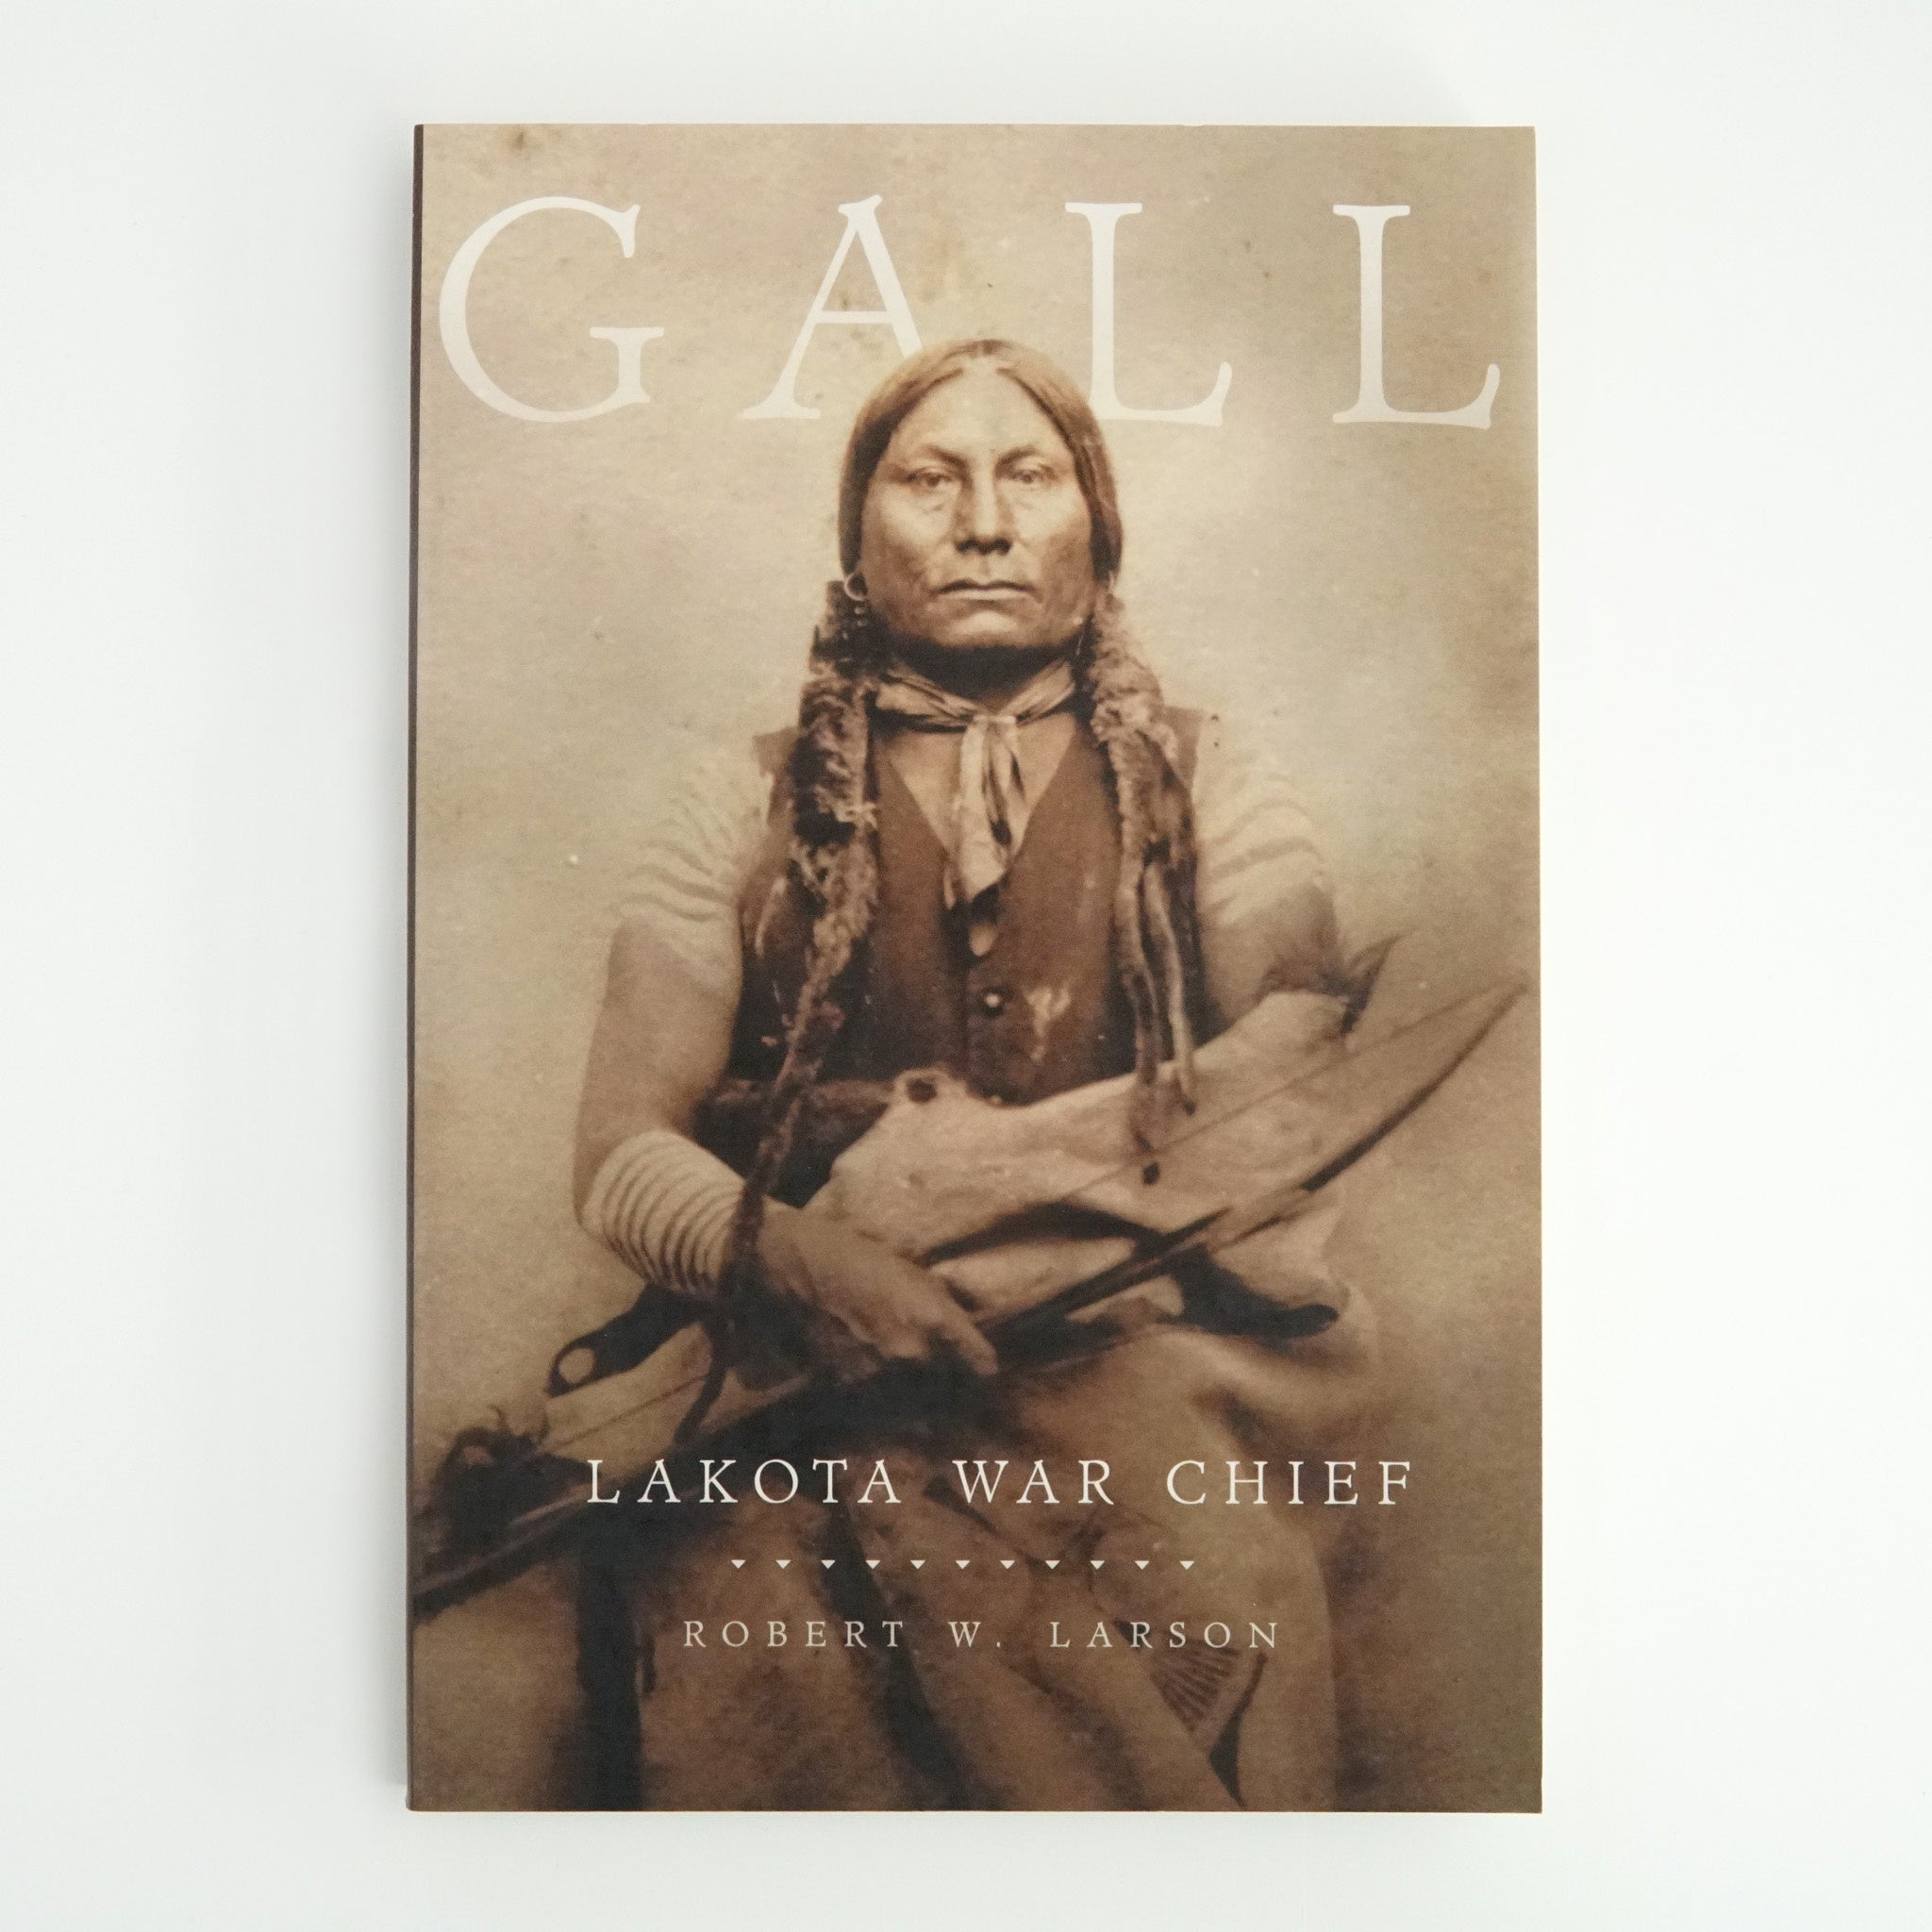 Gall: Lakota War Chief by Robert W. Larson